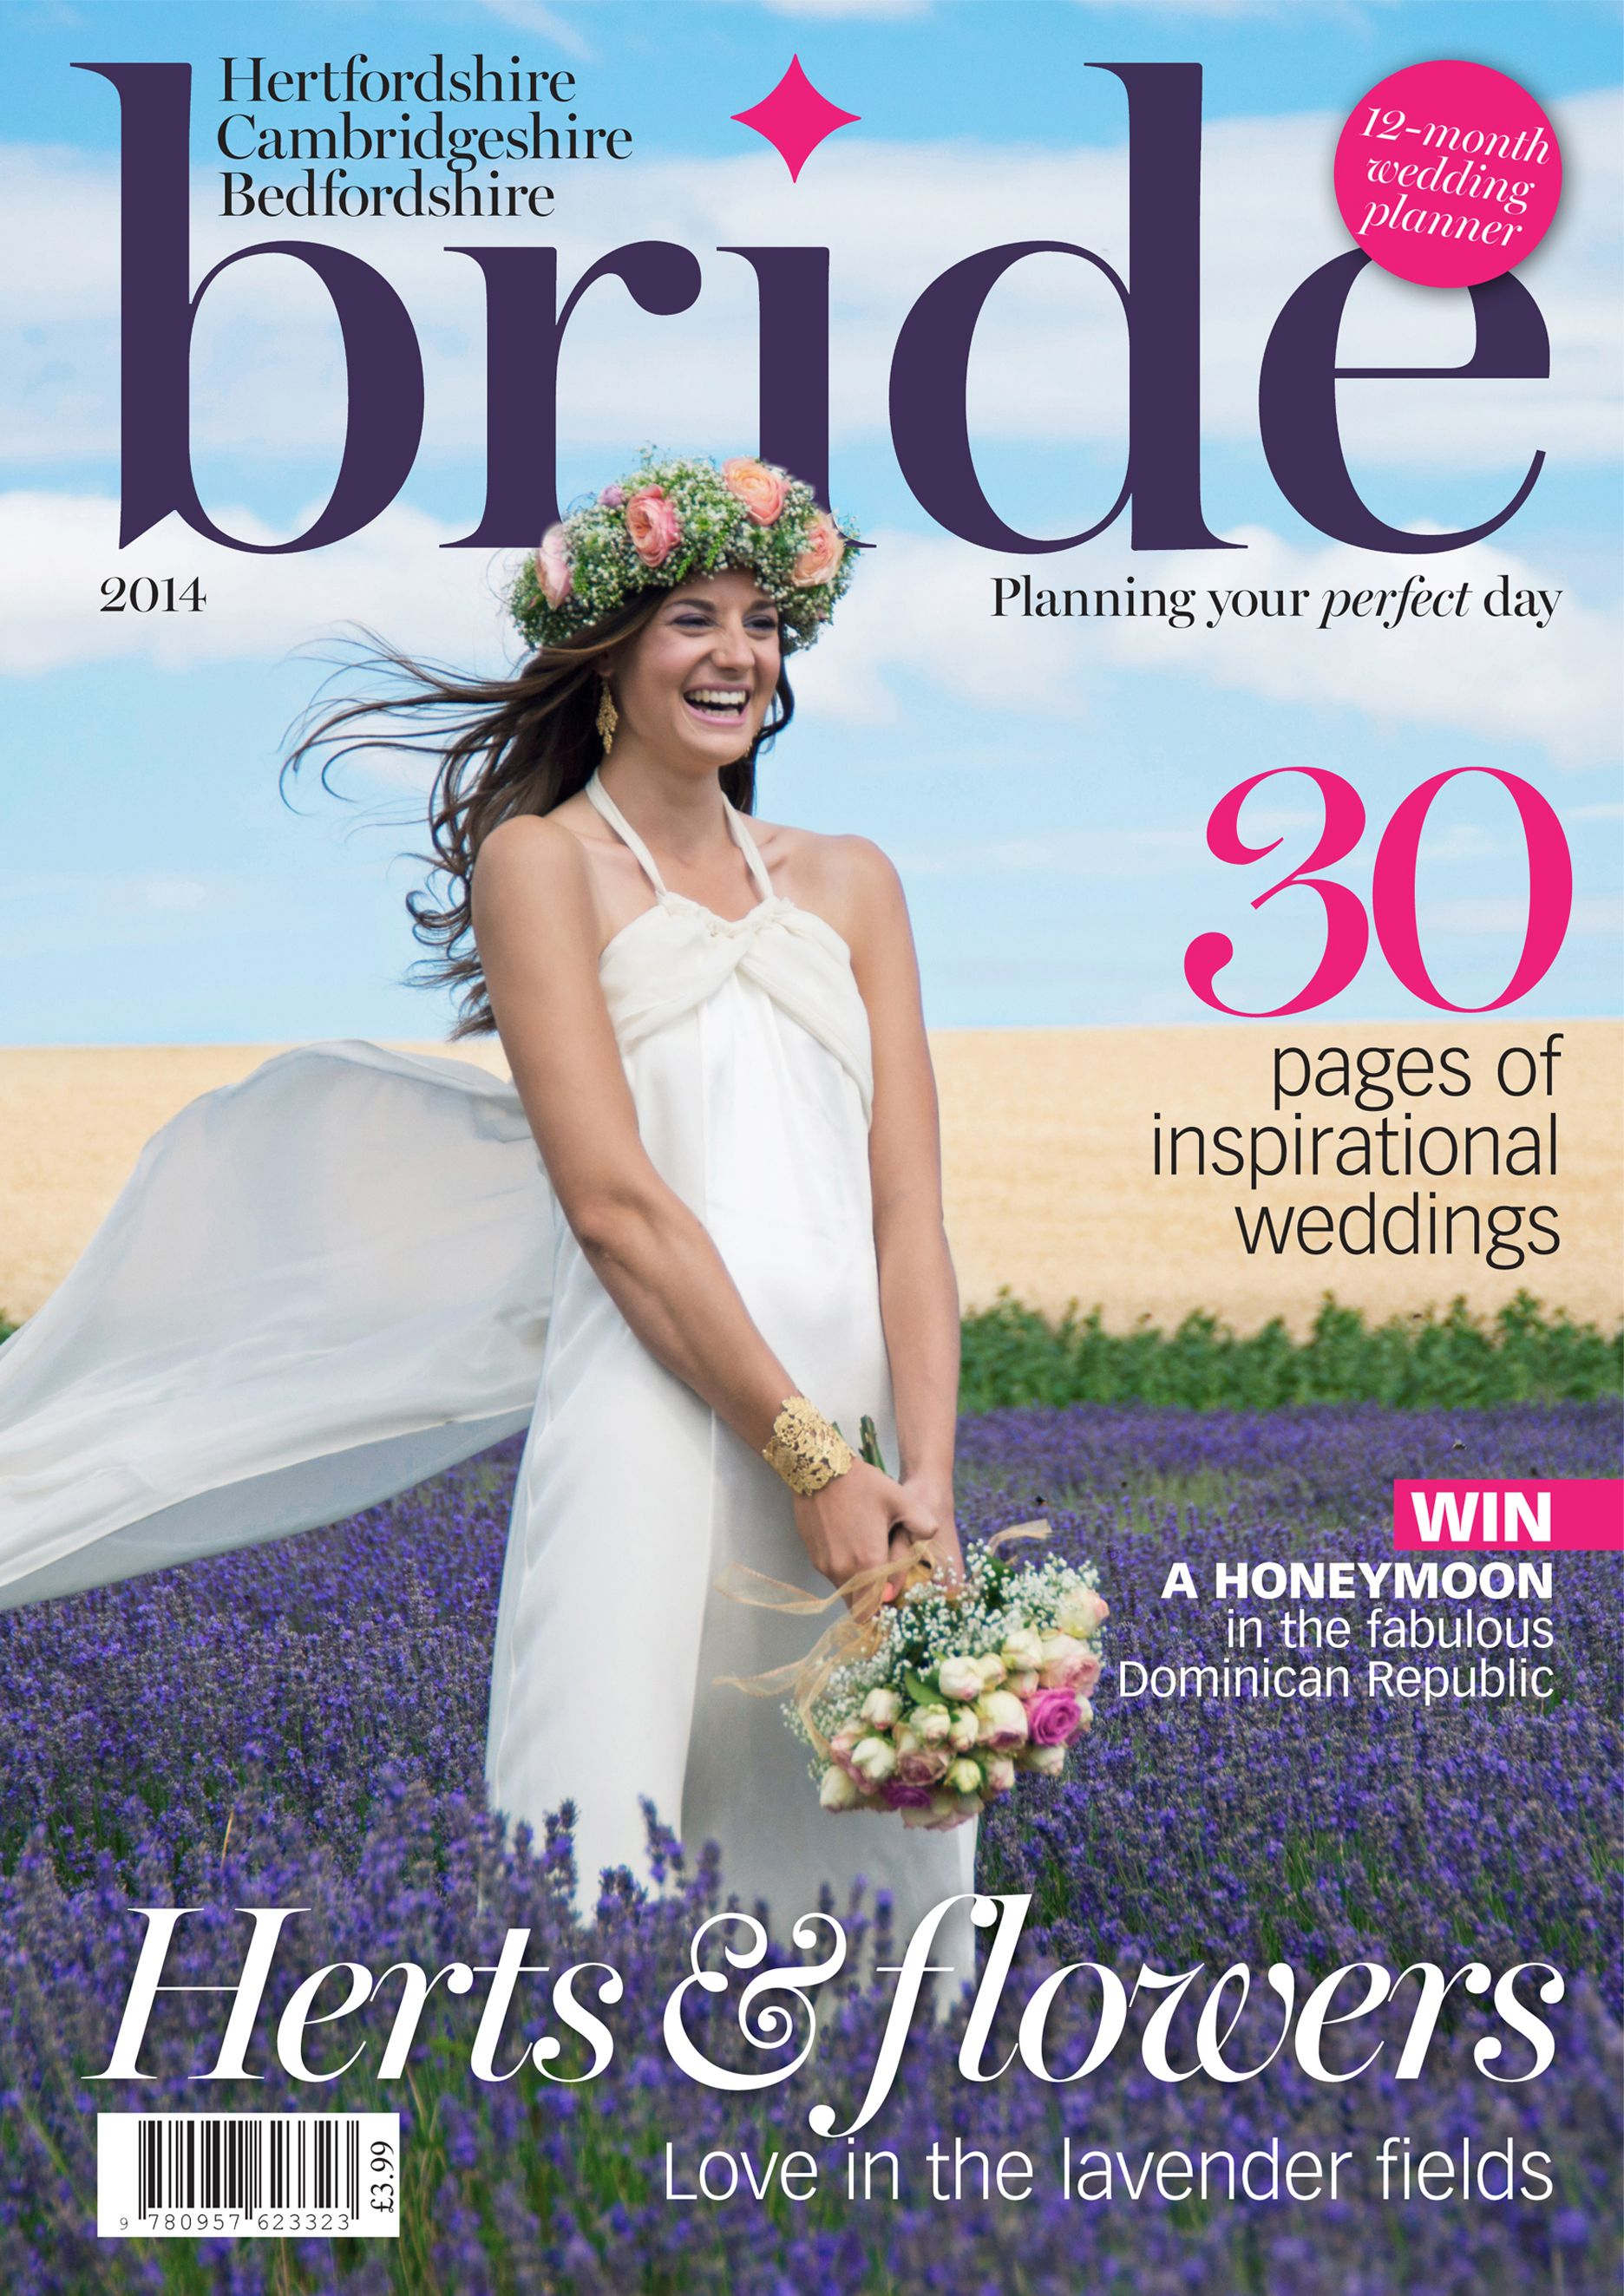 Rolling Hills Are In Wedding Magazines For Top Wedding Venue Must See Wedding Location Wedding Magazine Wedding Locations Wedding Venues